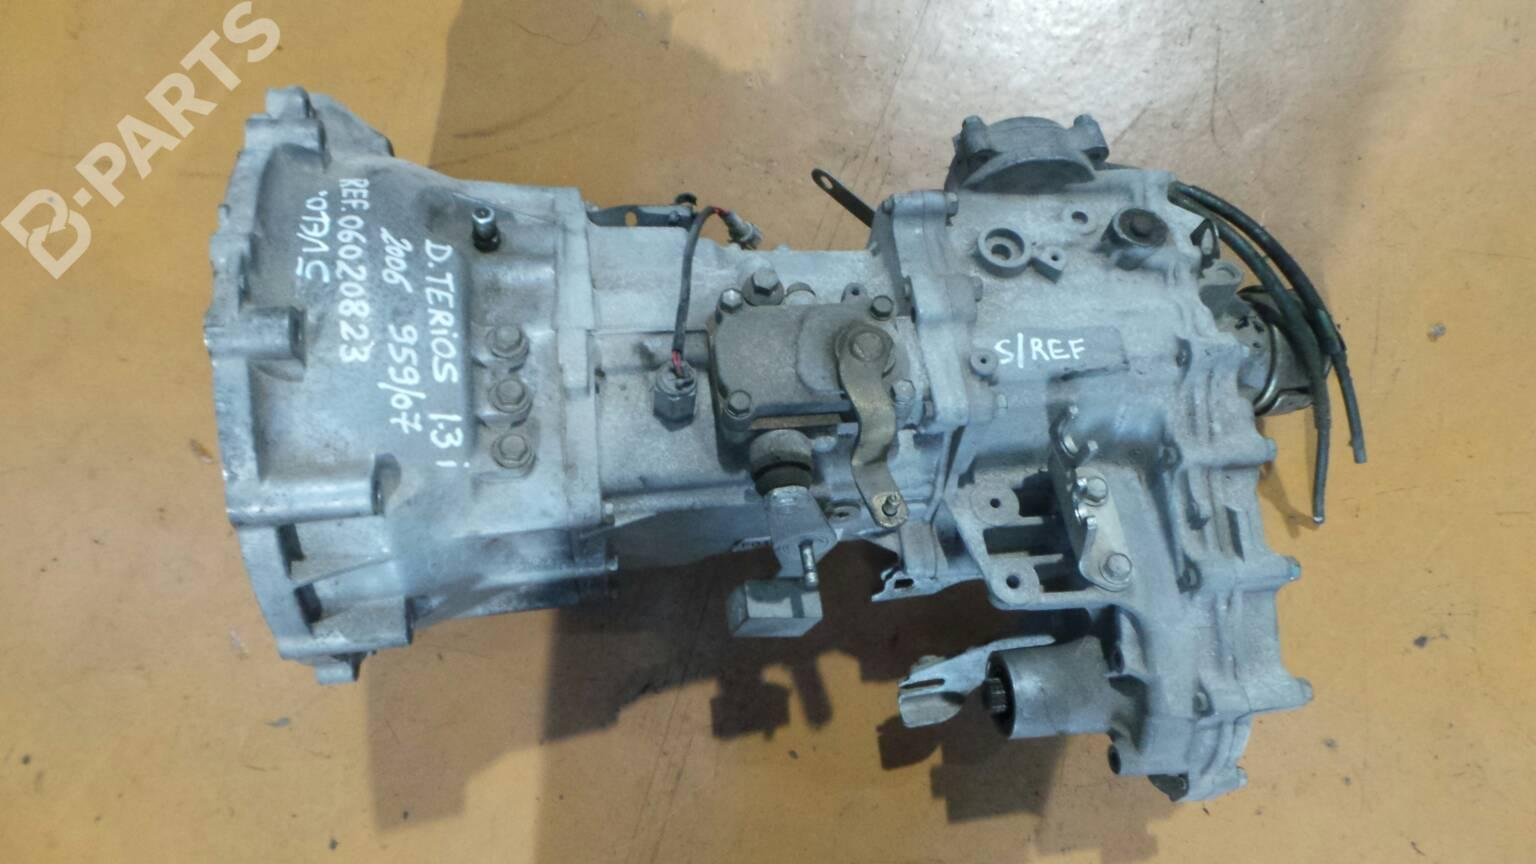 Manual Gearbox 06020823 DAIHATSU, TERIOS (J2_) 1.3 VVT-i 4x4 (86hp